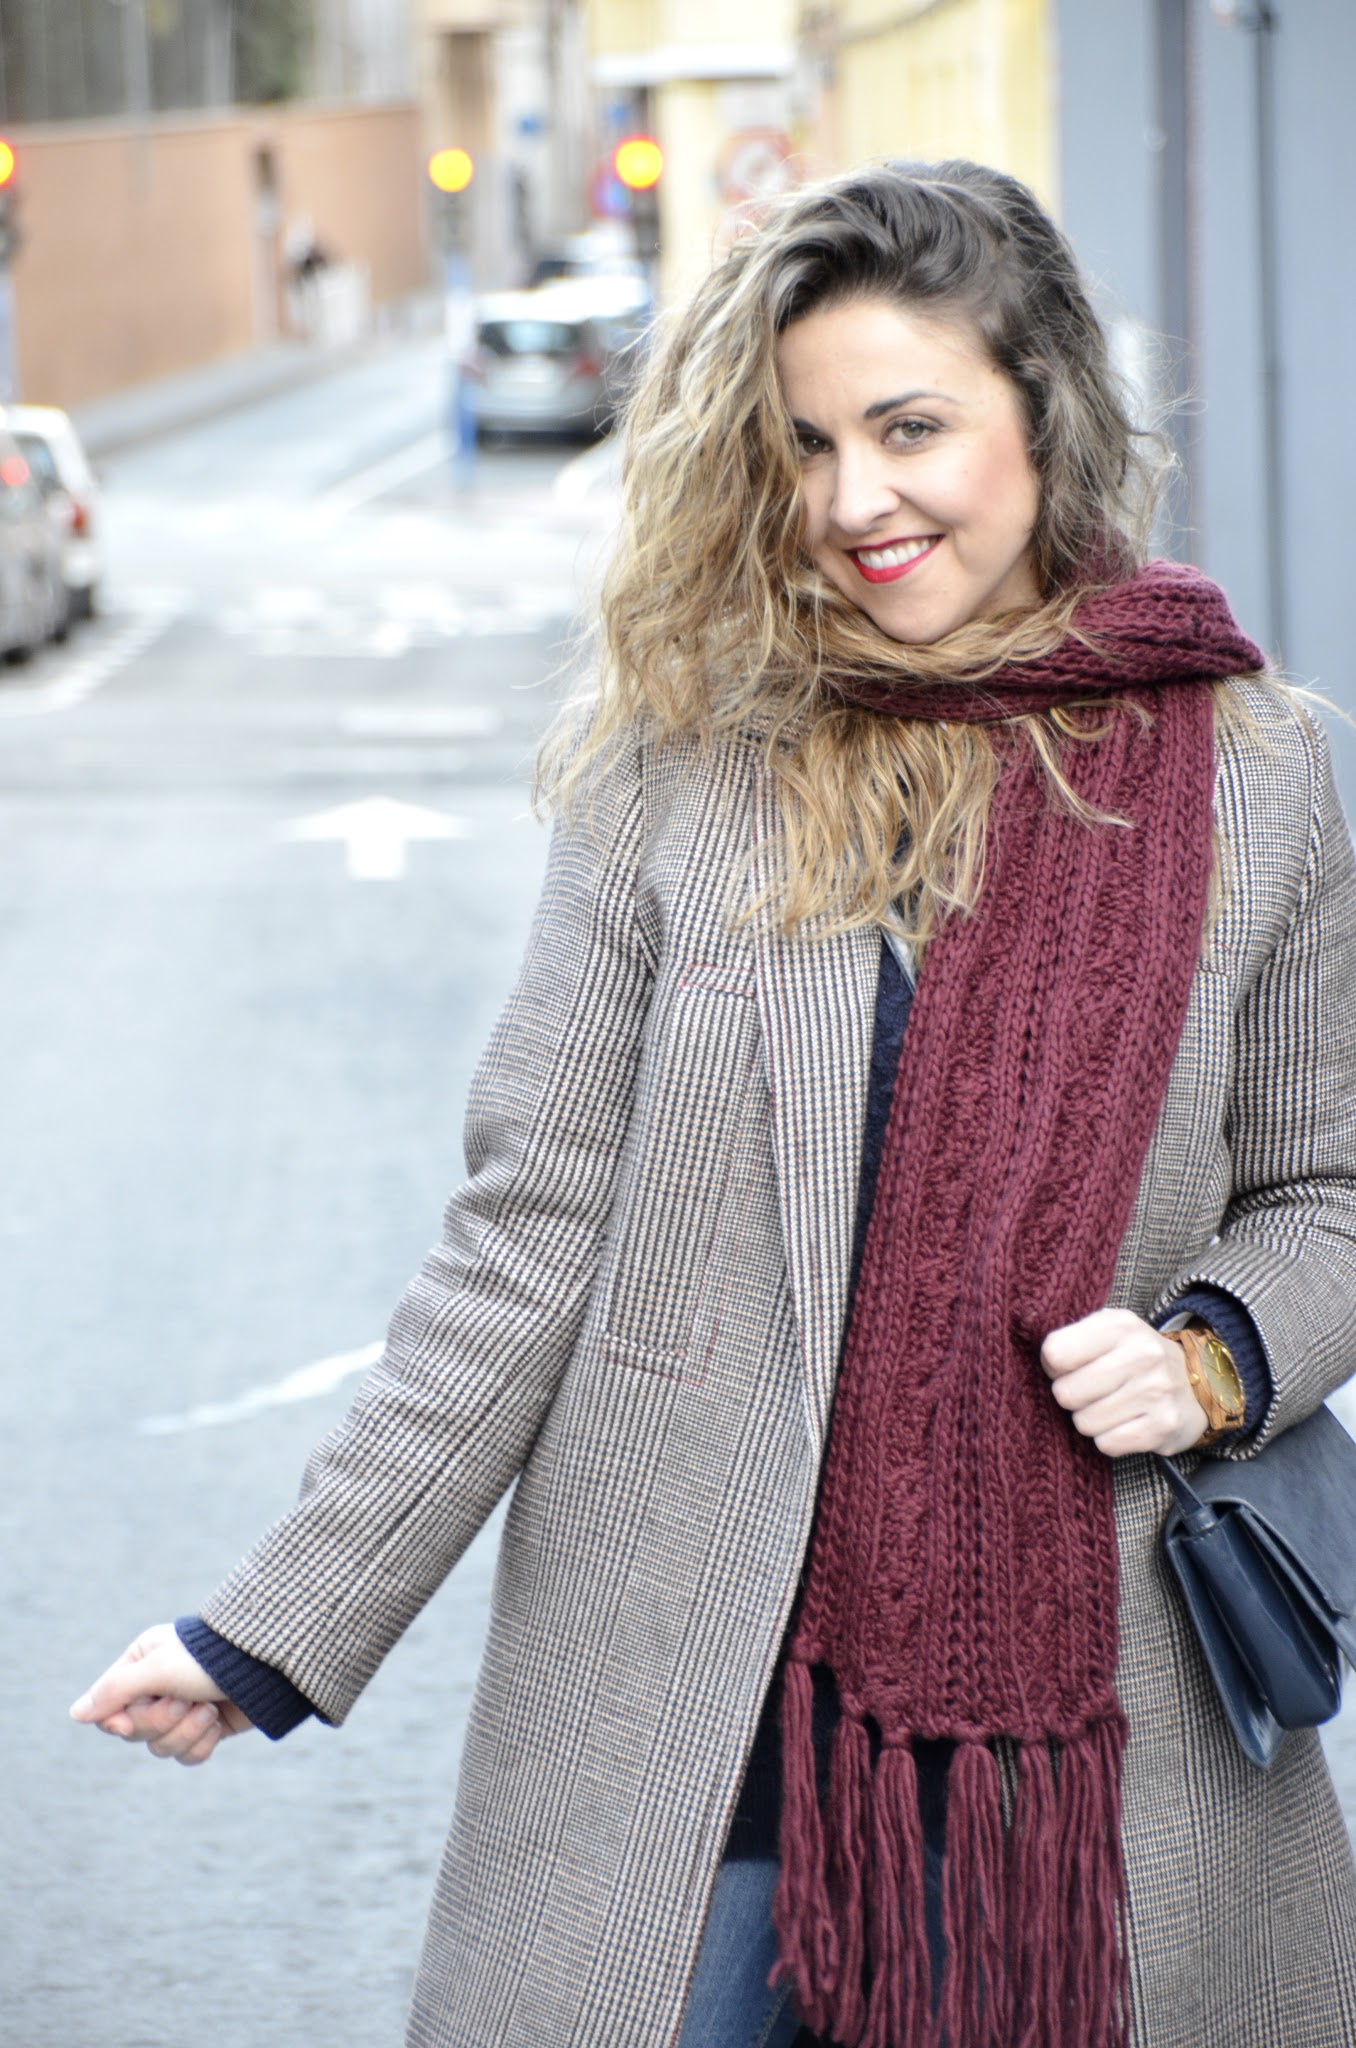 how to style a plaid coat in winter